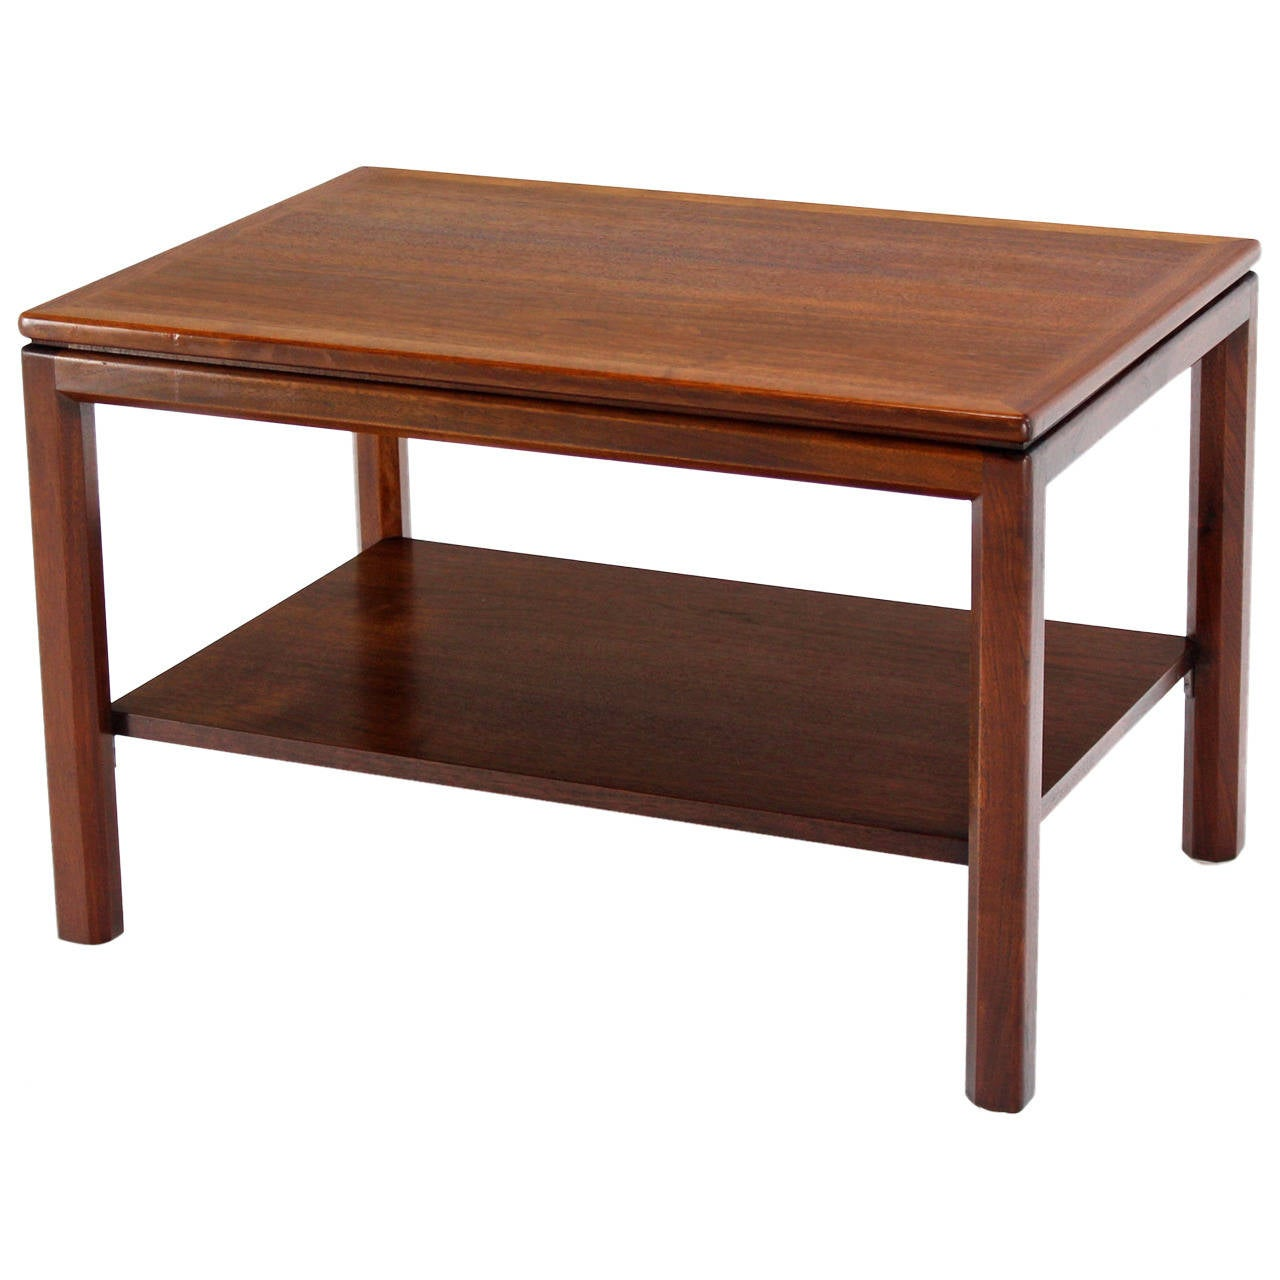 Danish modern oiled walnut end table at 1stdibs for Walnut side table